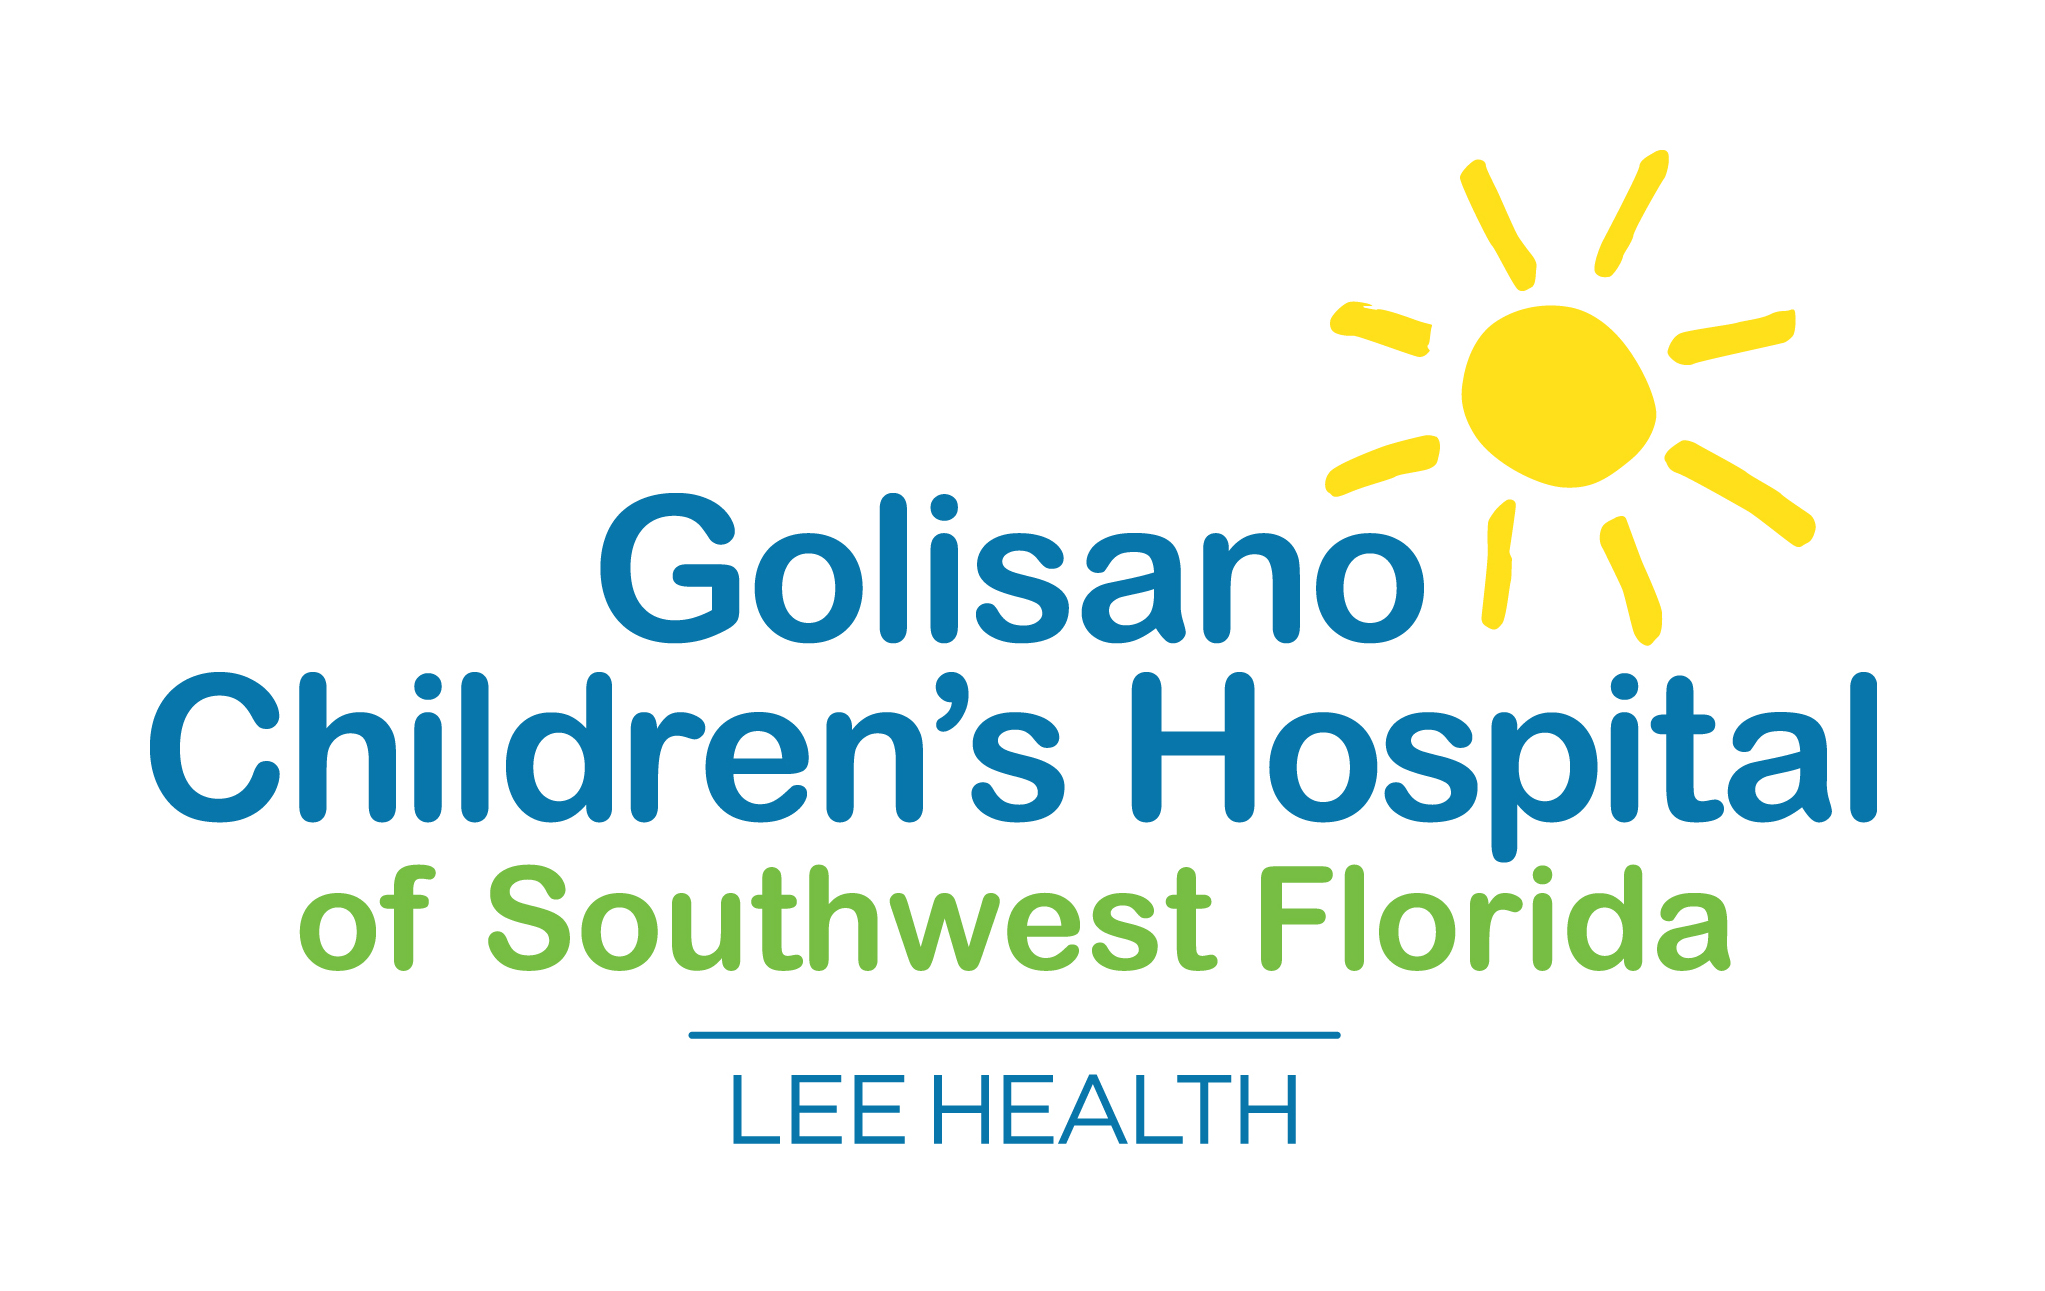 Gold Sponsor Golisano Children's Hospital of Southwest Florida, click to visit website